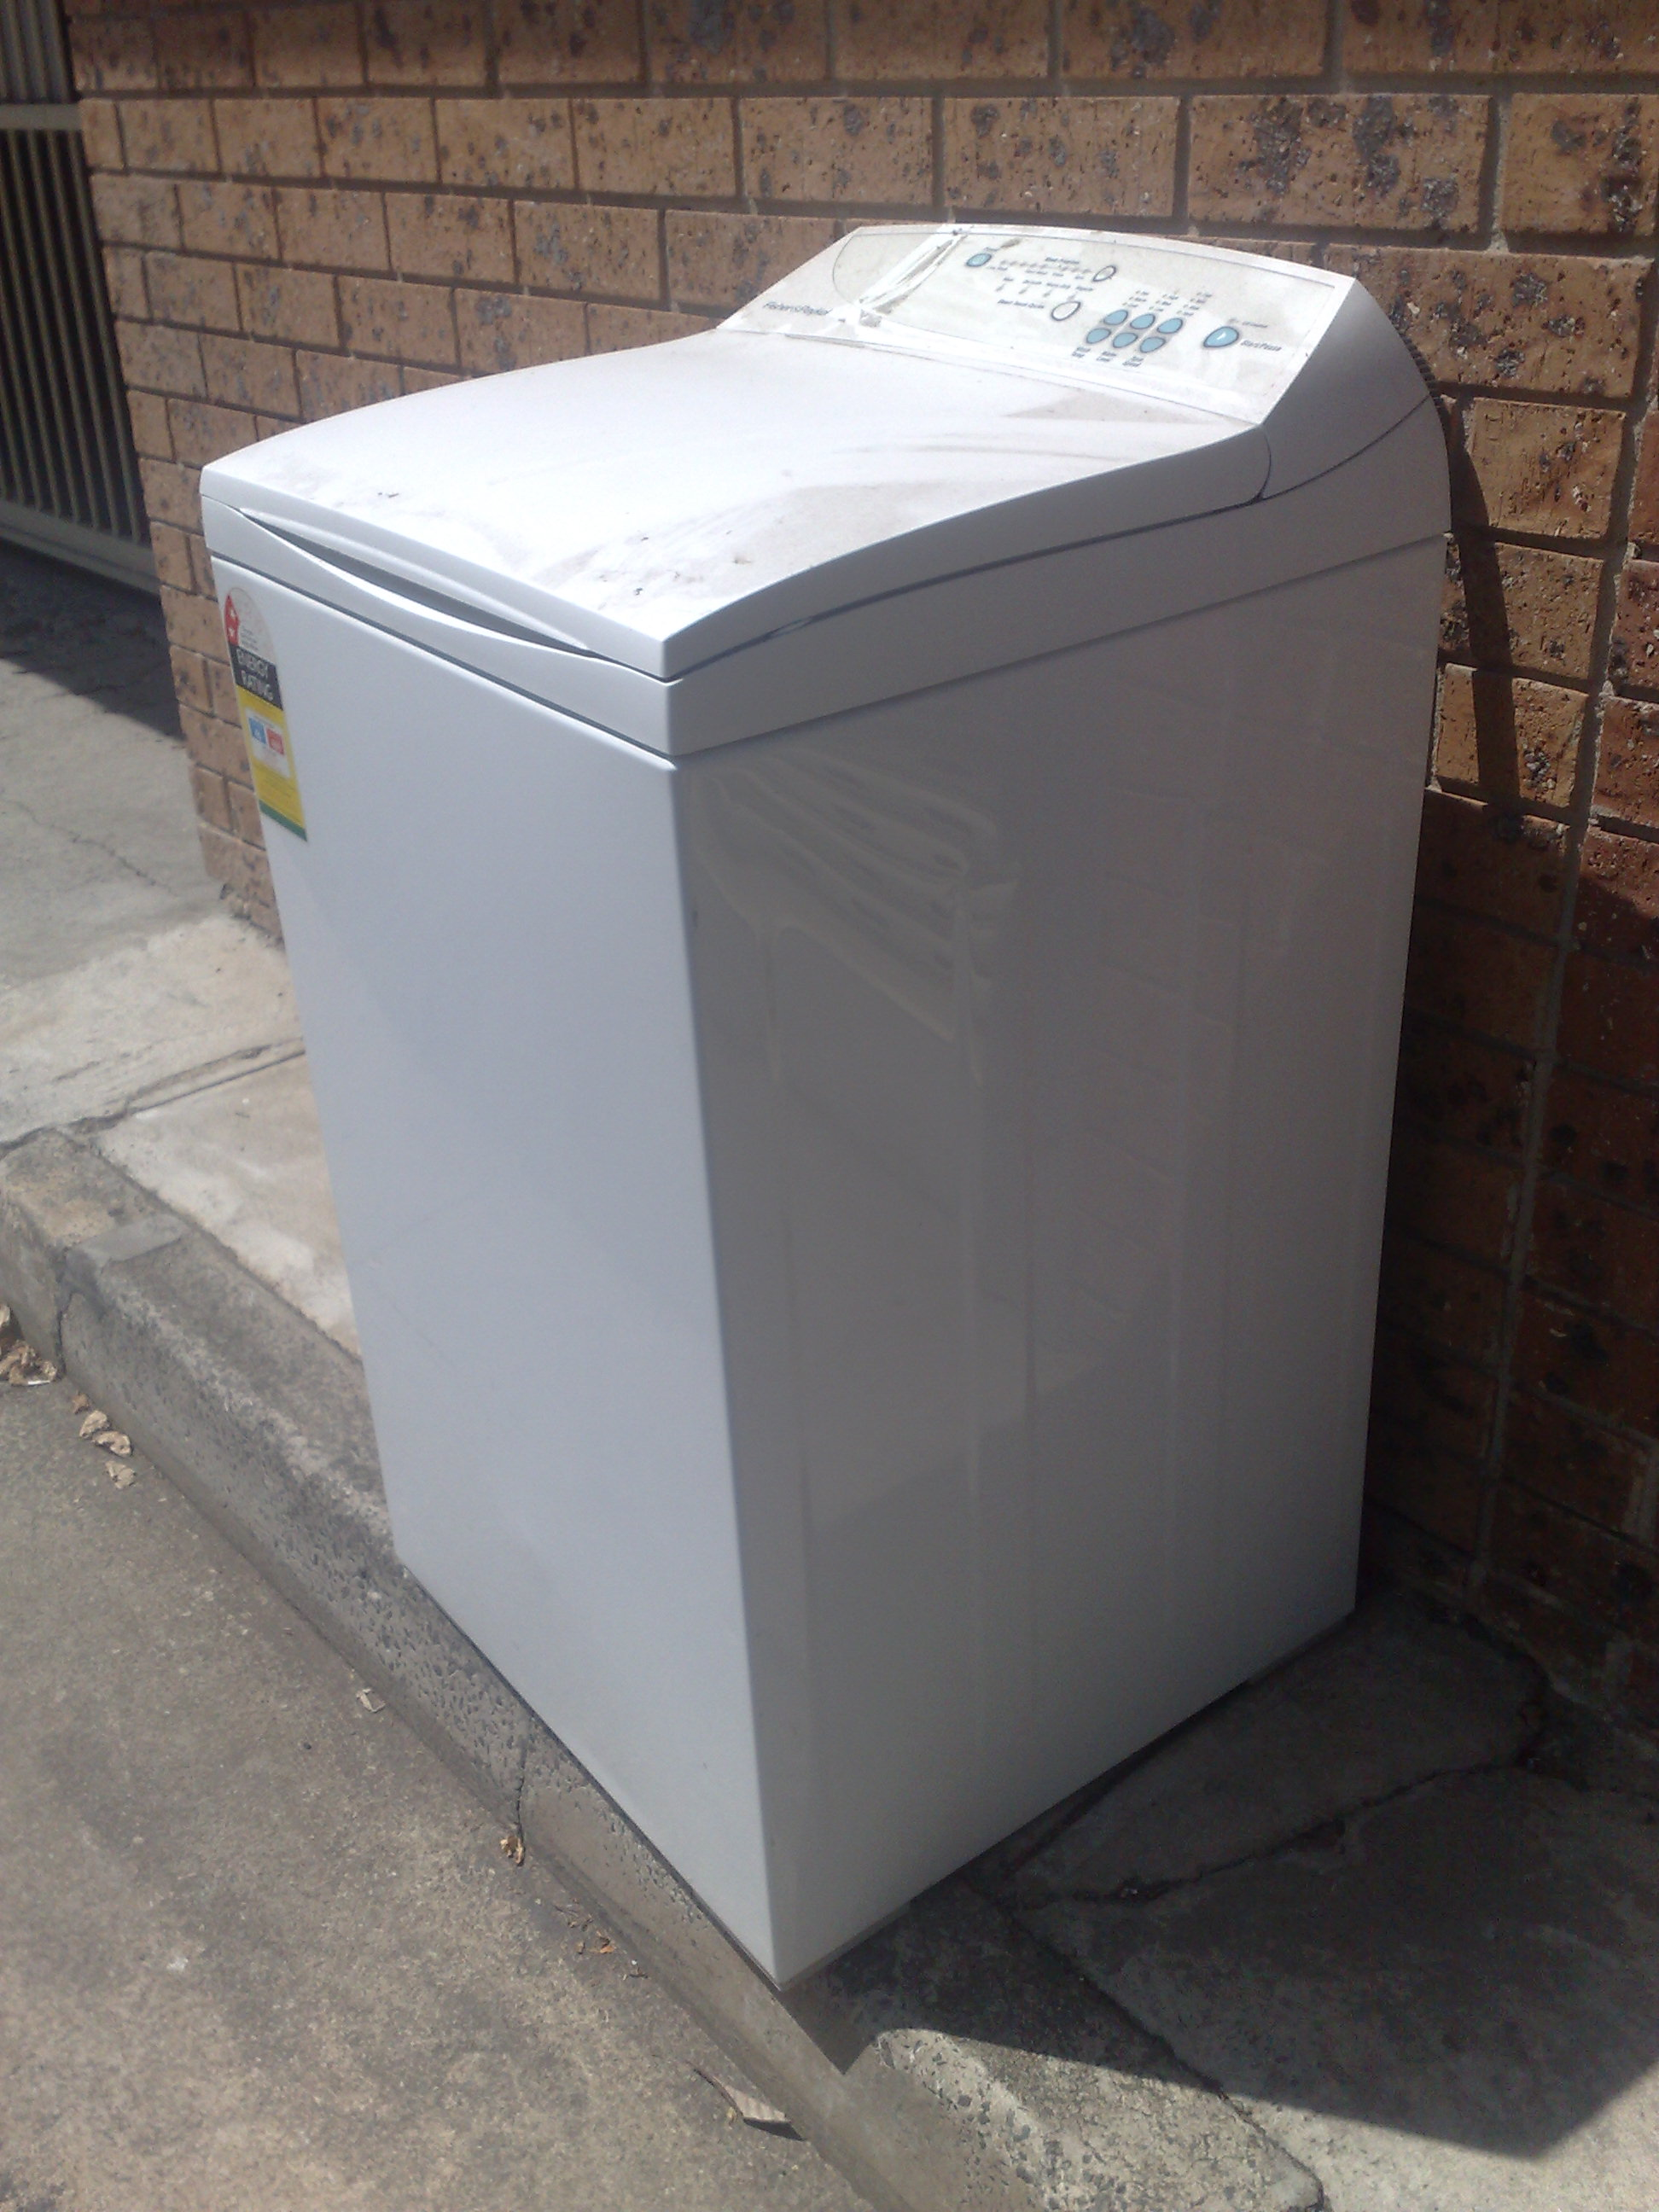 A seemingly perfectly good Fisher and Paykel discarded in my laneway.